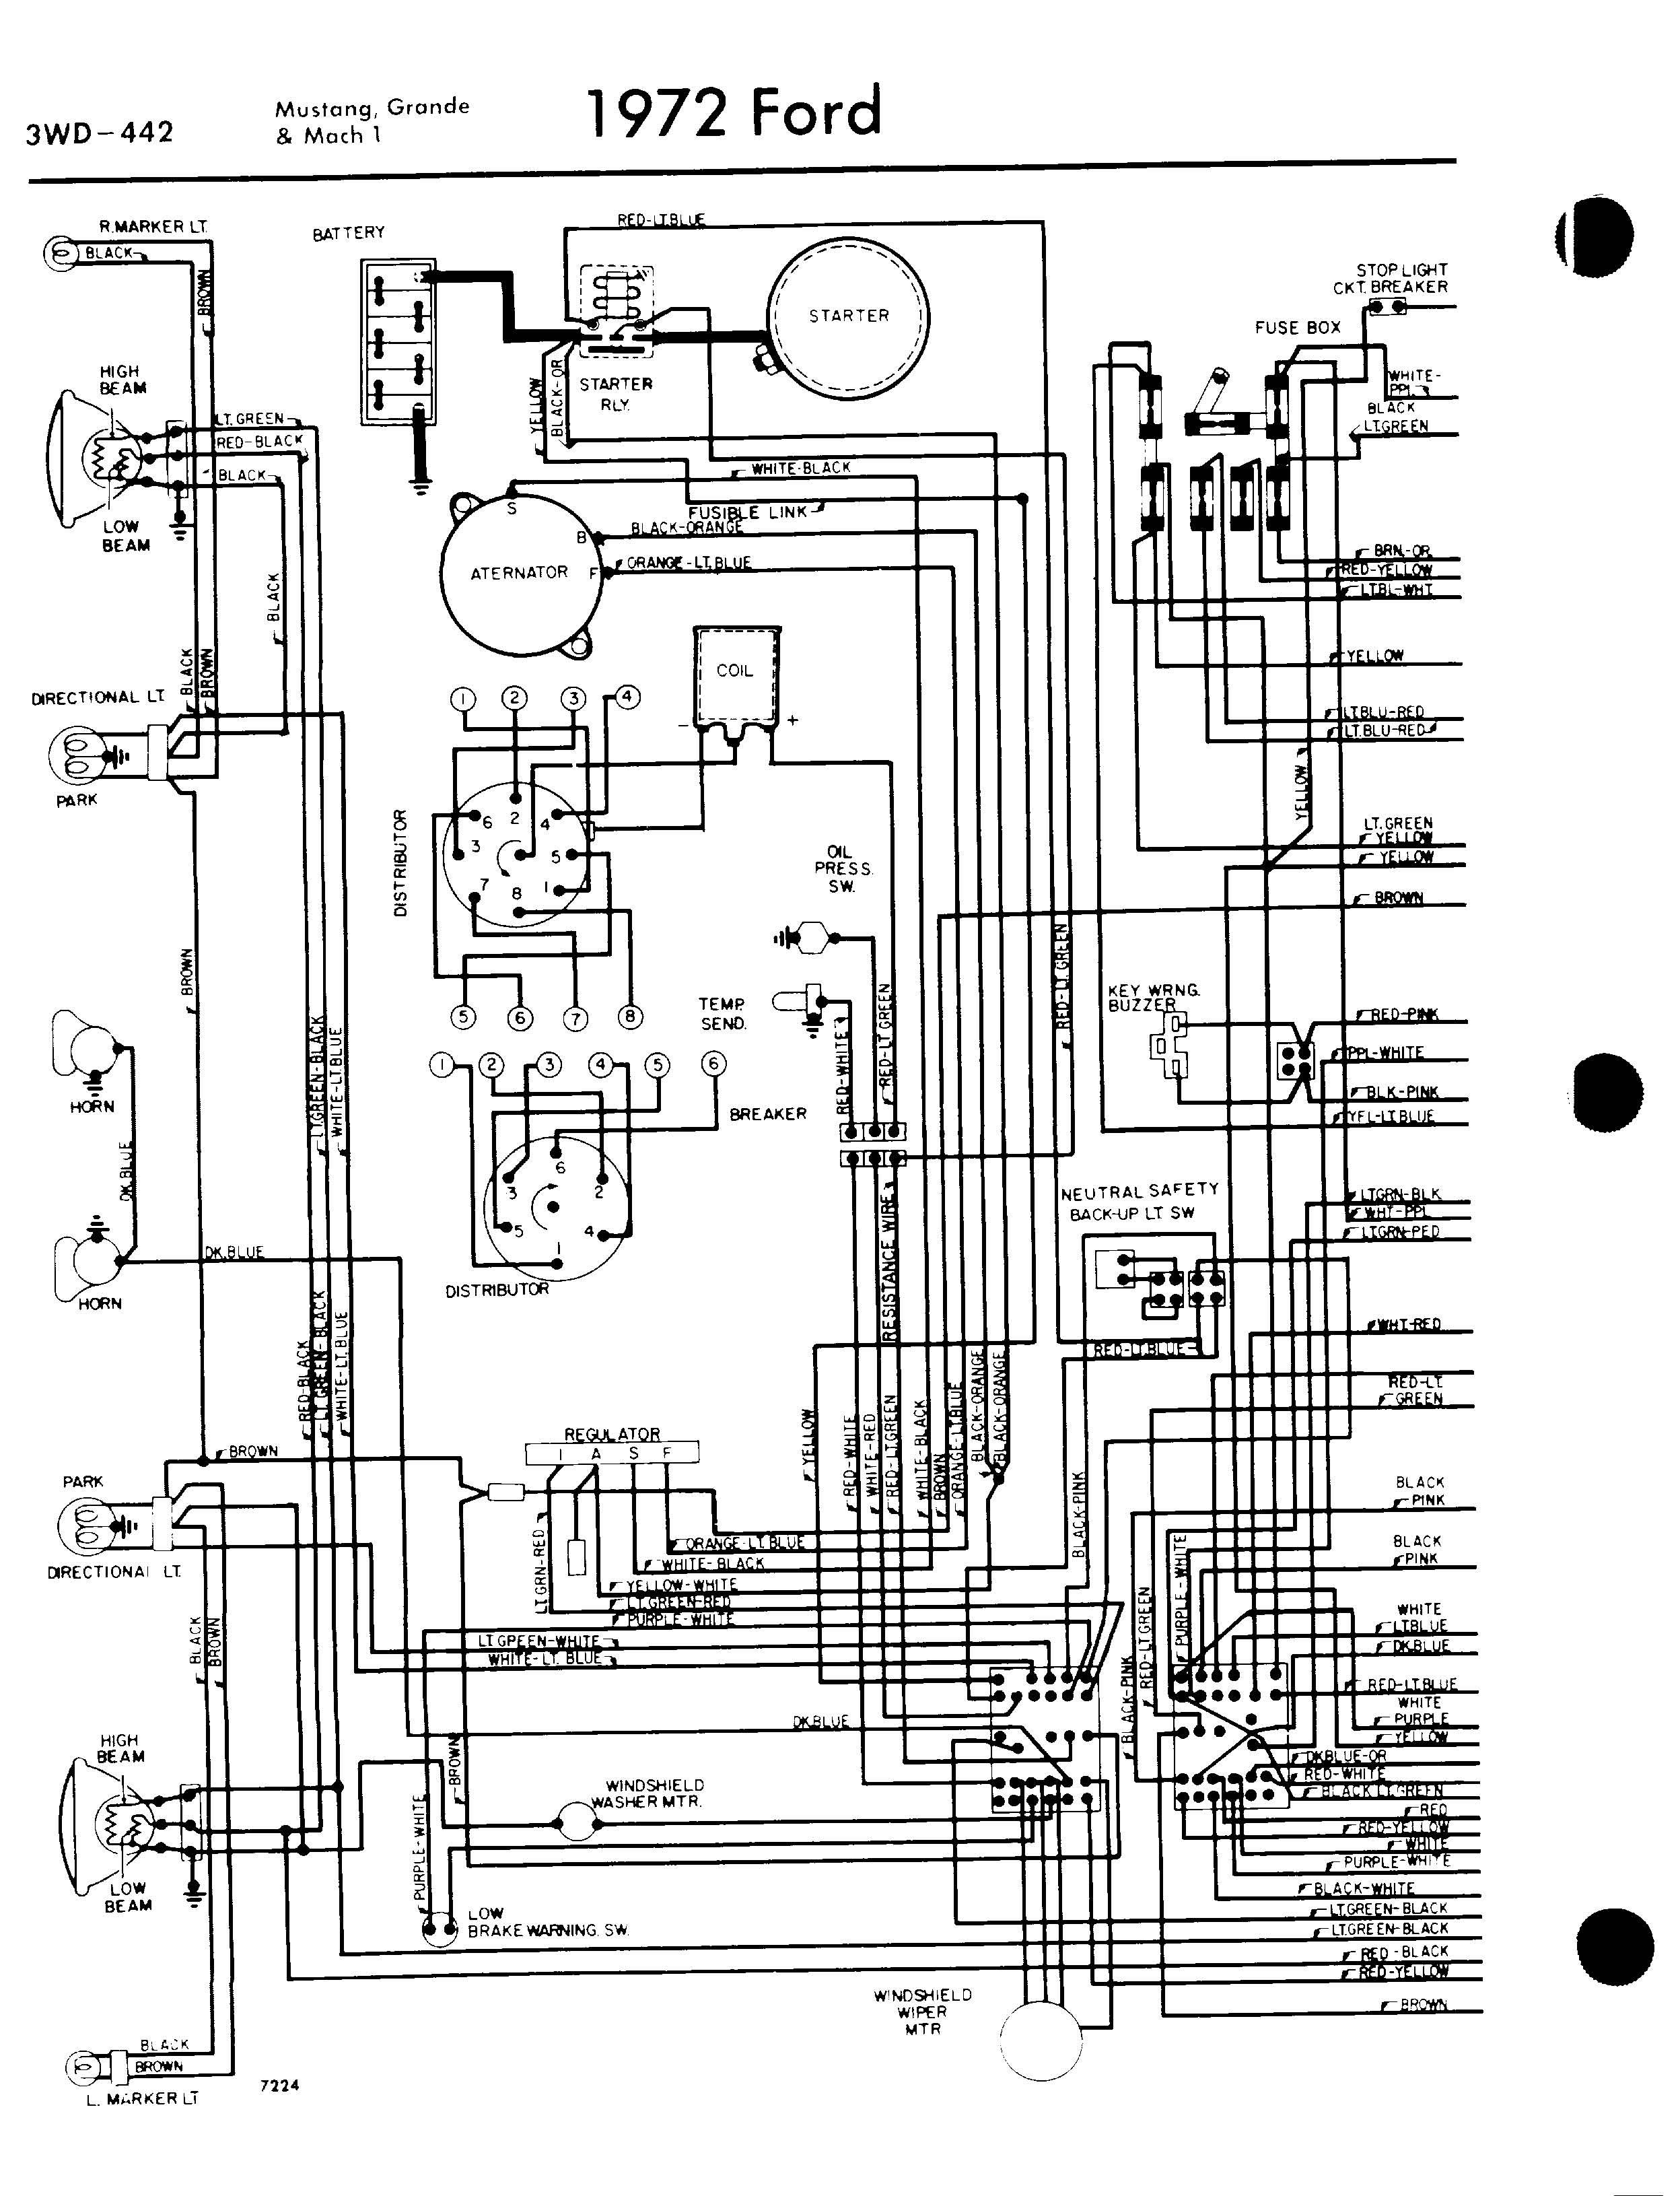 71af7a58e095e6a7716b32f1b23e8bd2 72 mach1 alternator wire harness diagram yahoo search results Ford Alternator Wiring Diagram at webbmarketing.co